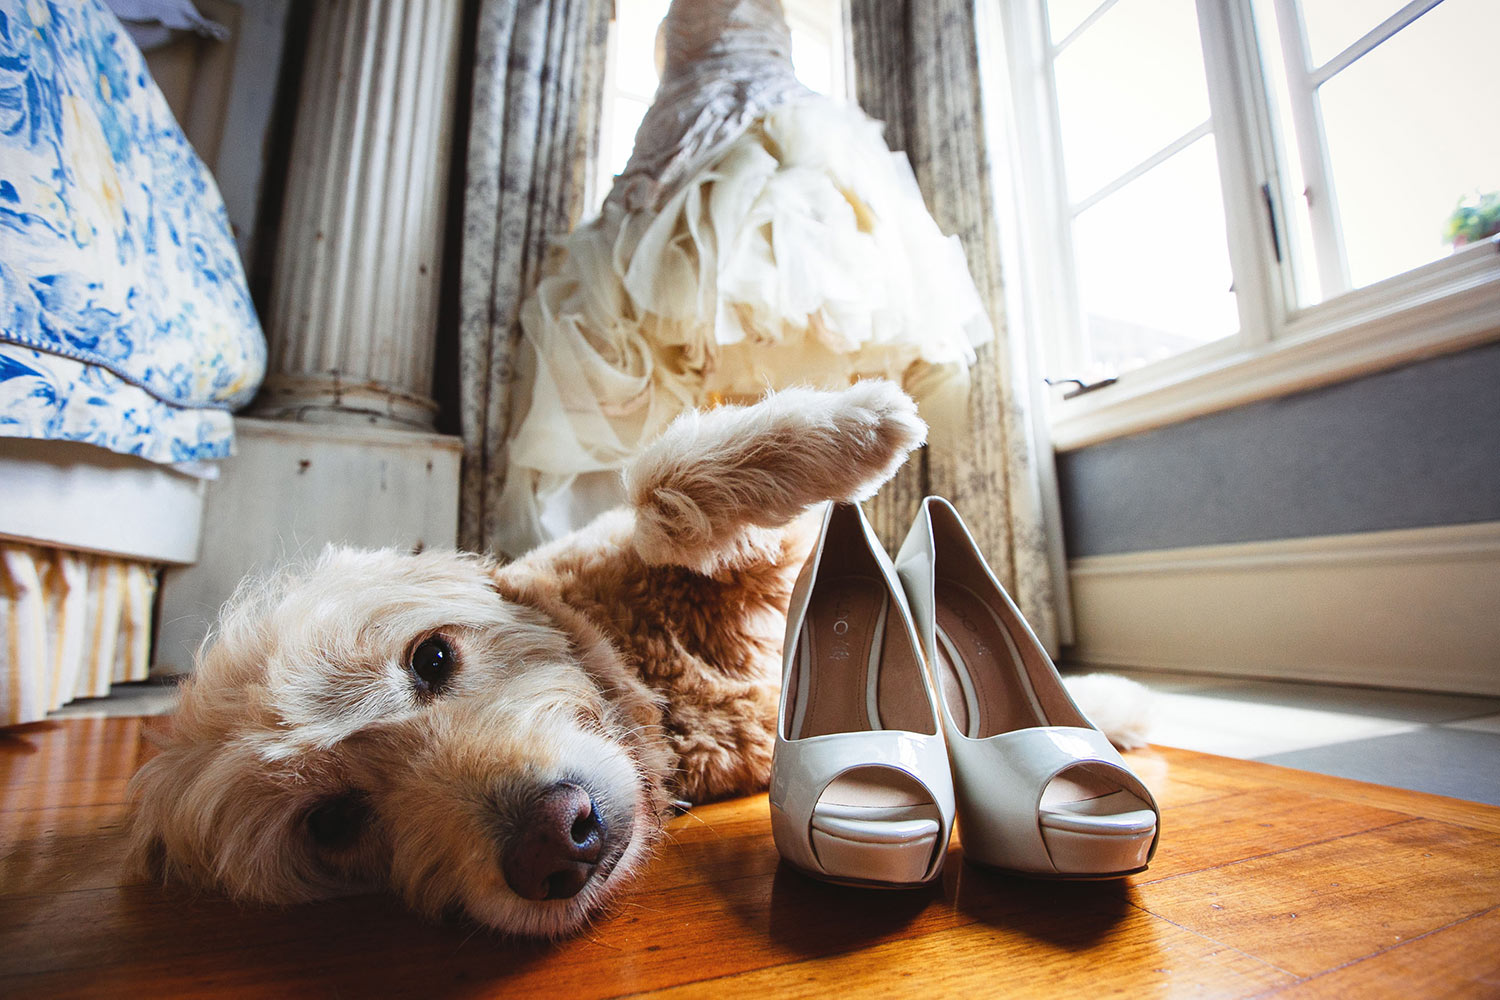 puppy-lays-by-brides-platform-pump-shoes-worlds-best-wedding-photos-callaway-gable-los-angeles-wedding-photographers